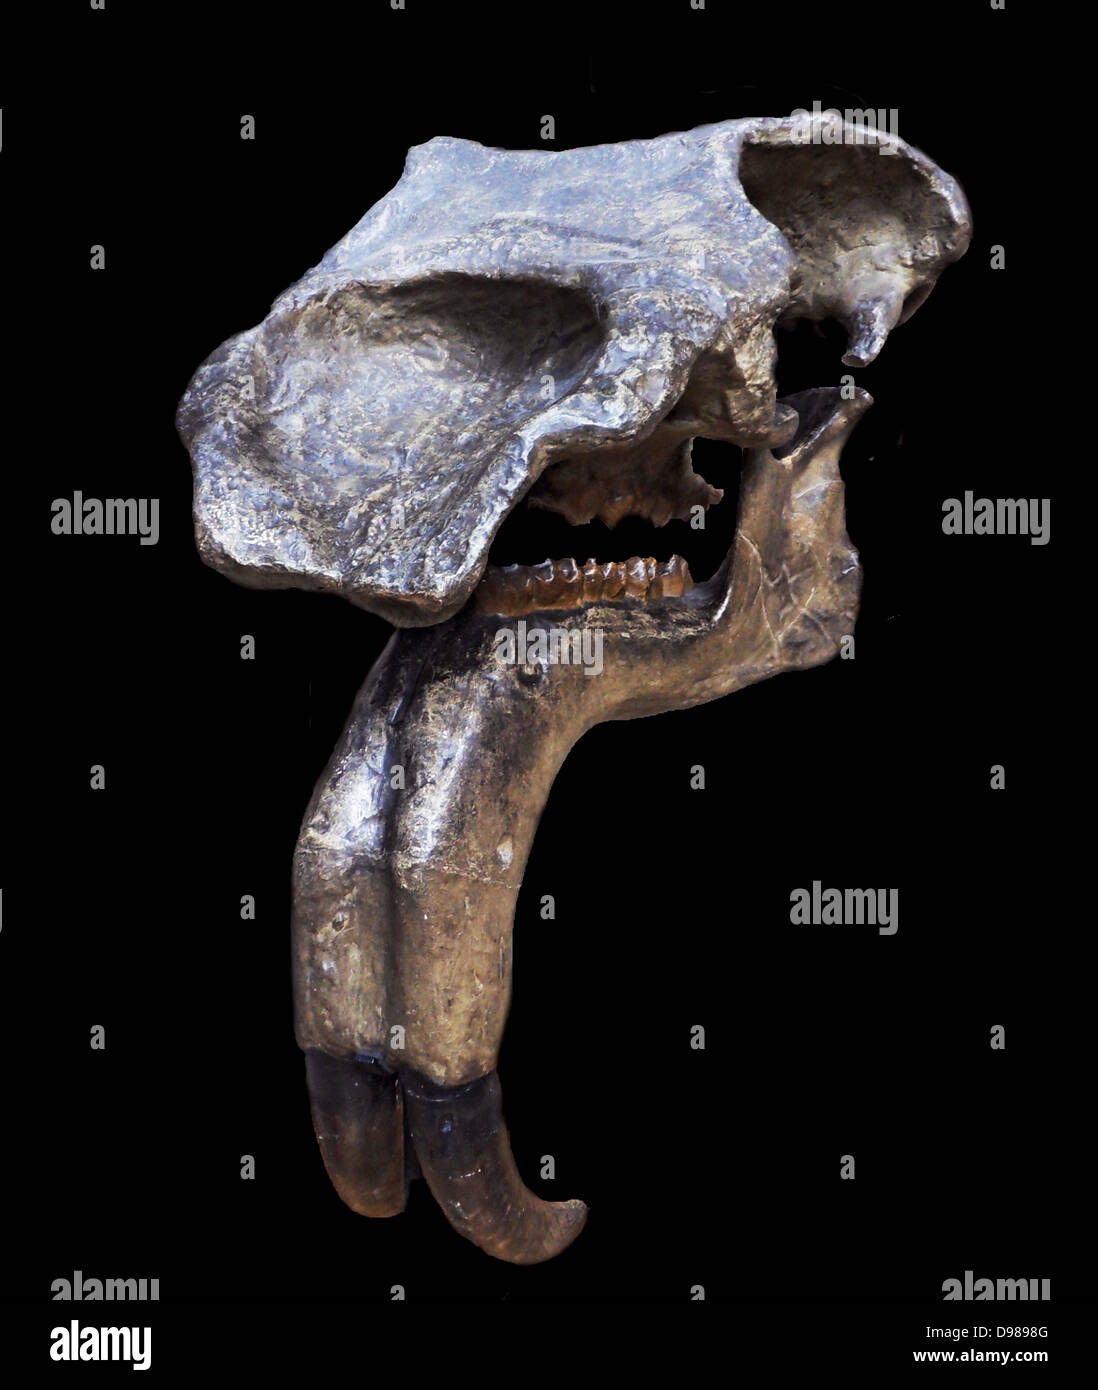 Deinotherium gigantean Kaup 1829. Head and teeth of Deinotherium giganteum Deinotherium giganteum is the type species. - Stock Image